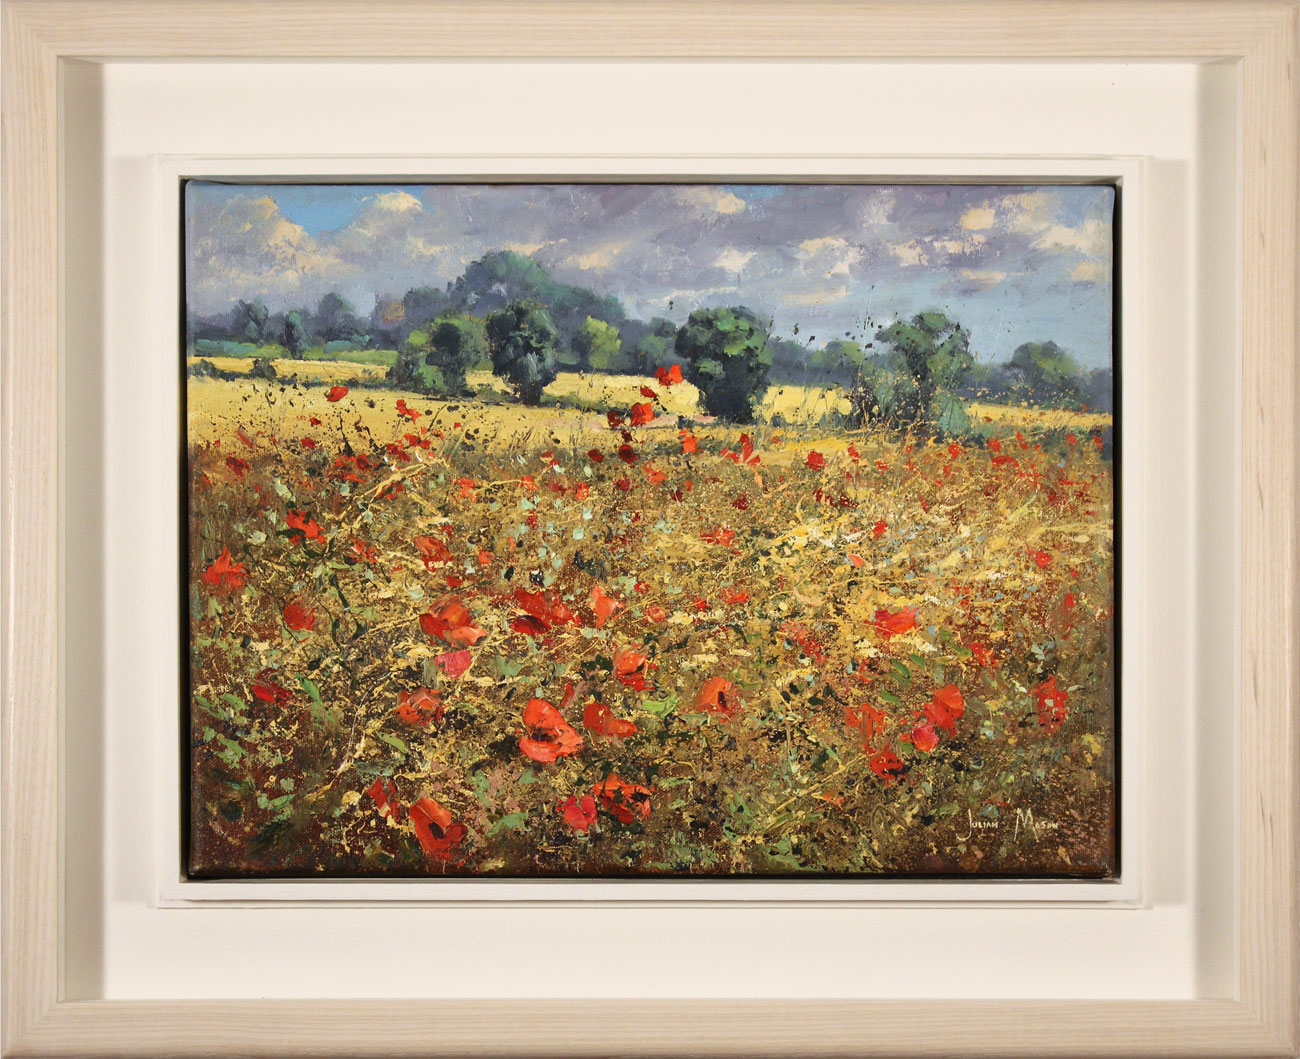 Julian Mason, Original oil painting on canvas, August Colour, click to enlarge